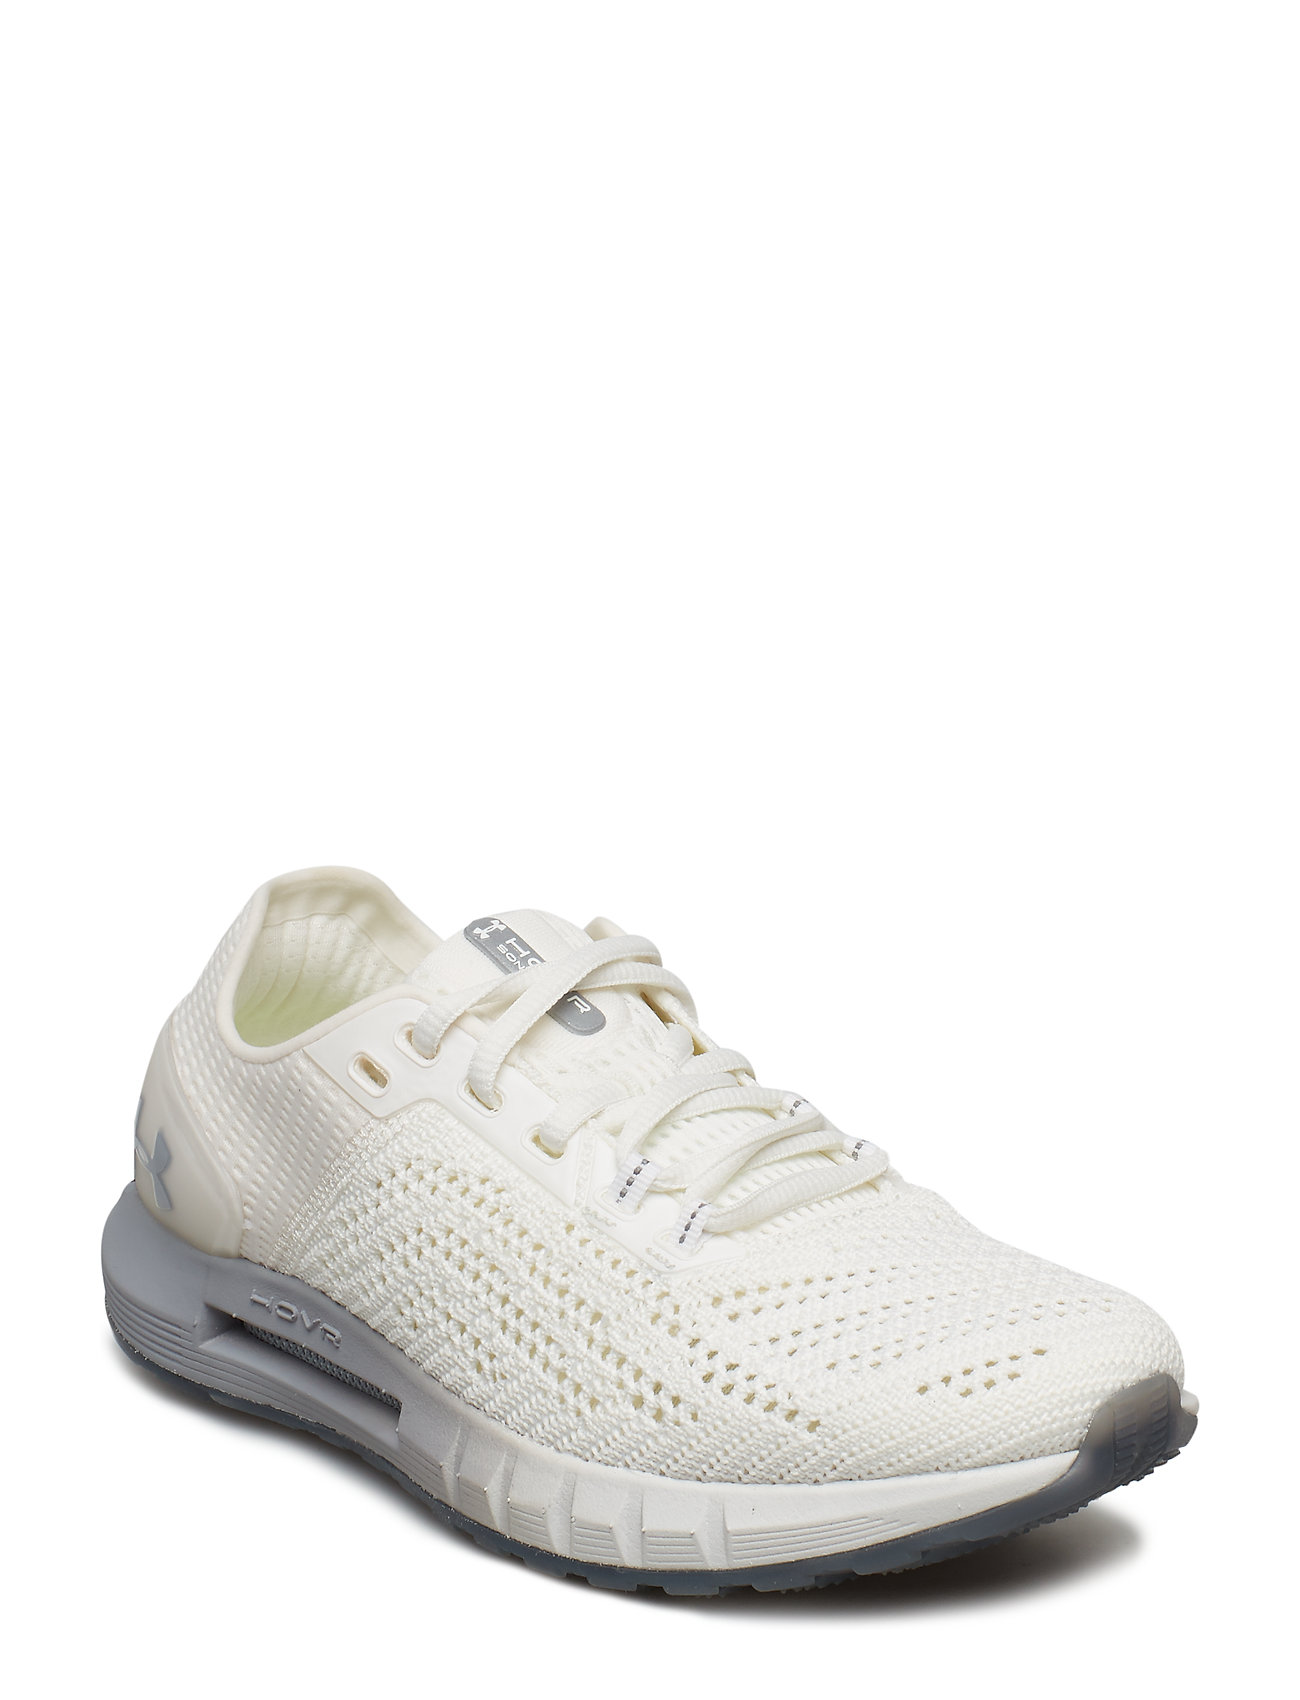 UNDER ARMOUR Low-tops & sneakers Women